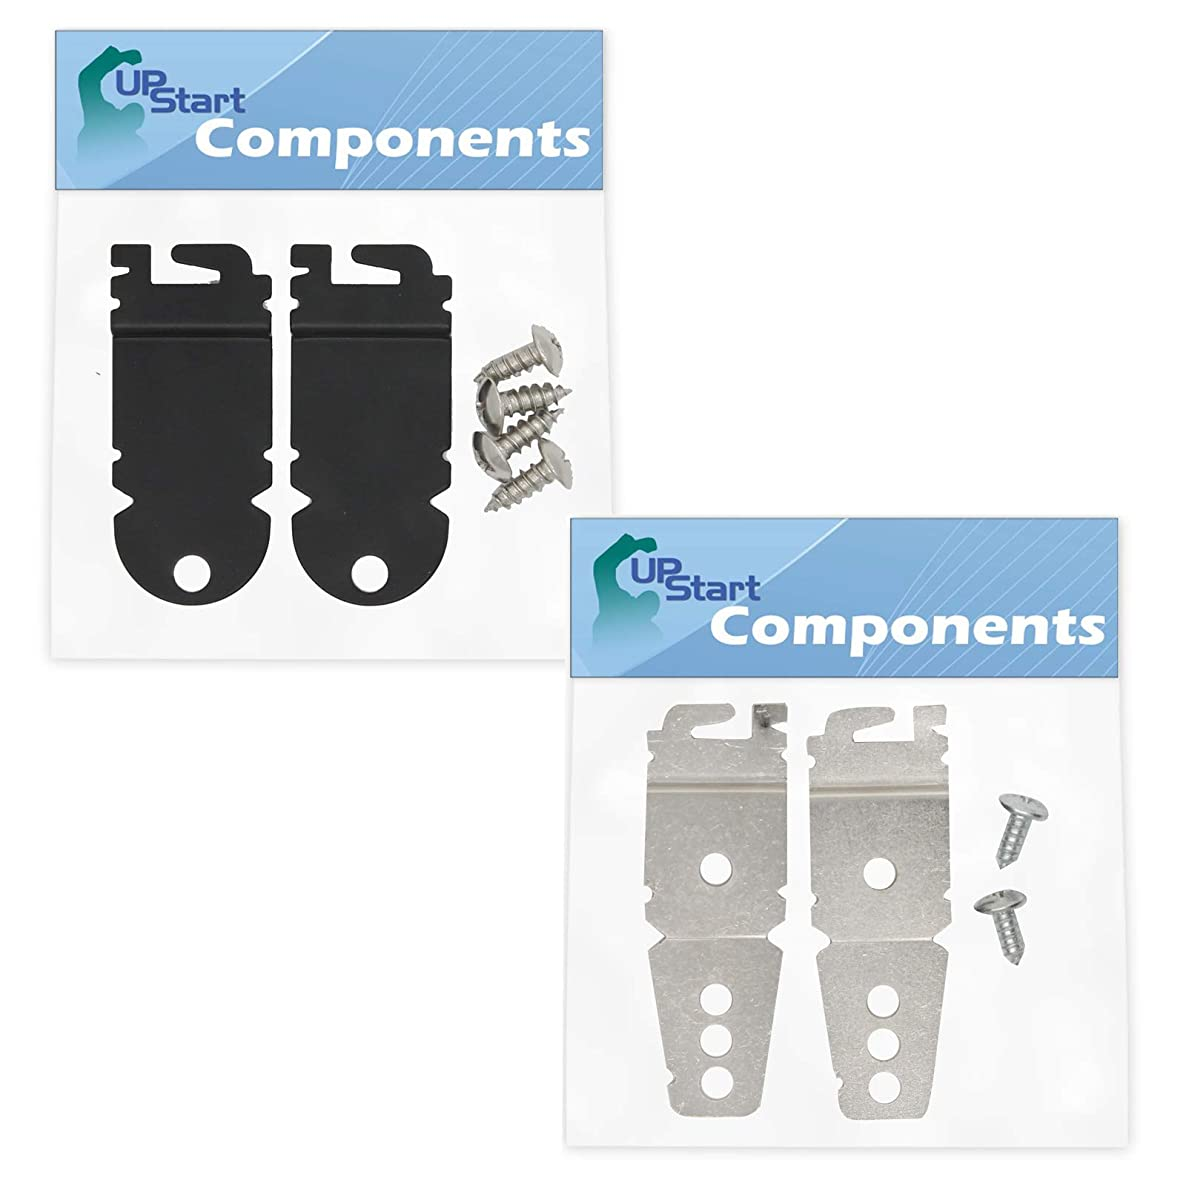 8212560 & 8269145 Mounting Bracket Replacement Kit With Screw Replacement for Whirlpool GU2300XTVB2 Dishwasher - Compatible with WP8269145 & 8212560 Undercounter Dishwasher Mounting Bracket